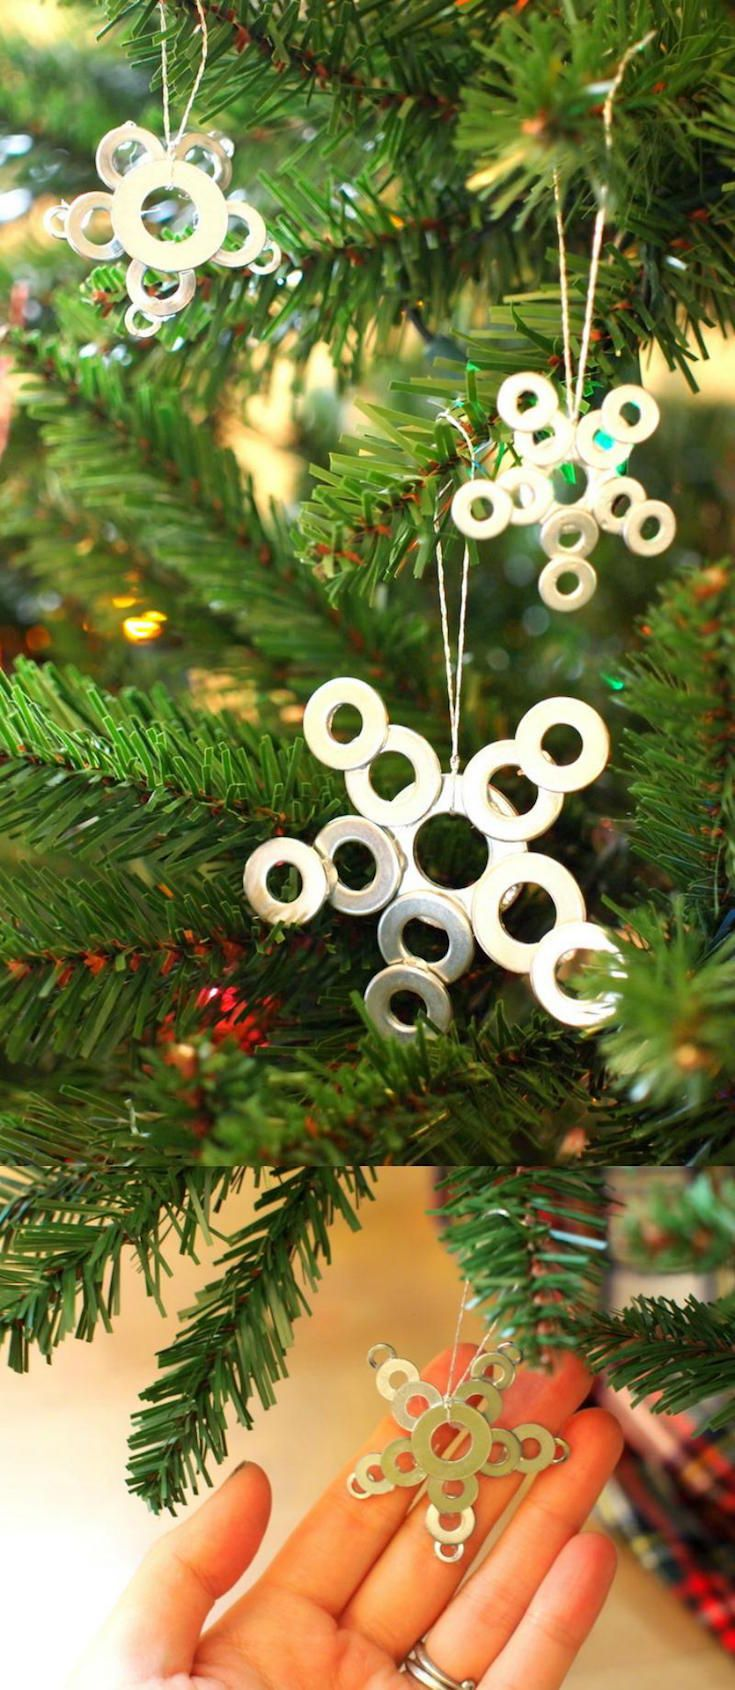 Diy Star Ornaments Made From Washers Christmas Tree Decorations Diy Diy Christmas Ornaments Homemade Christmas Tree Decorations